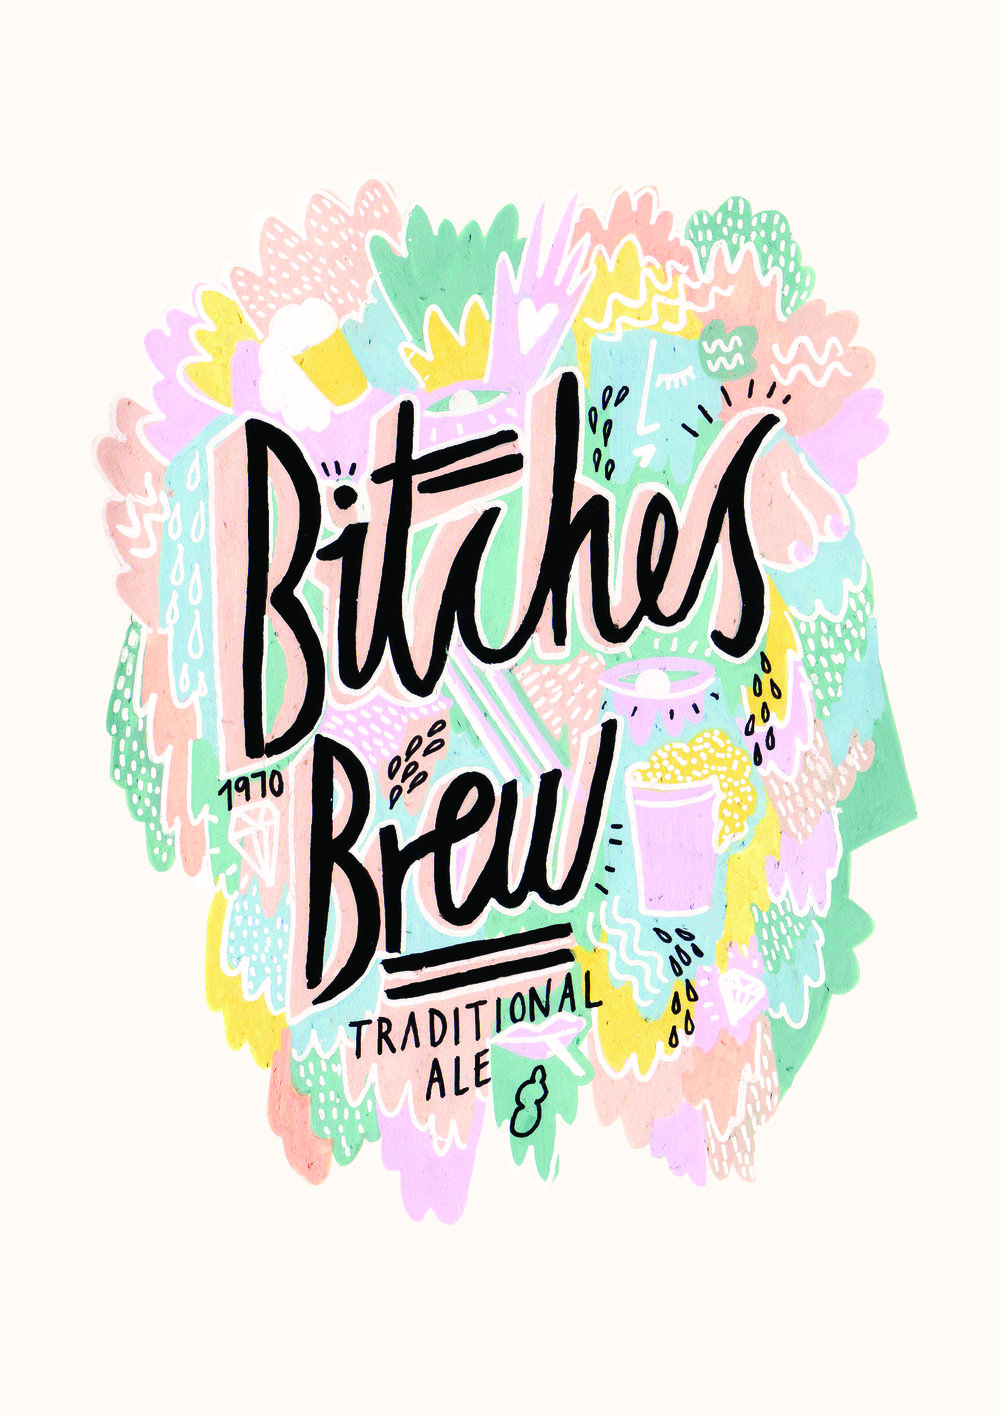 bitches brew.jpg